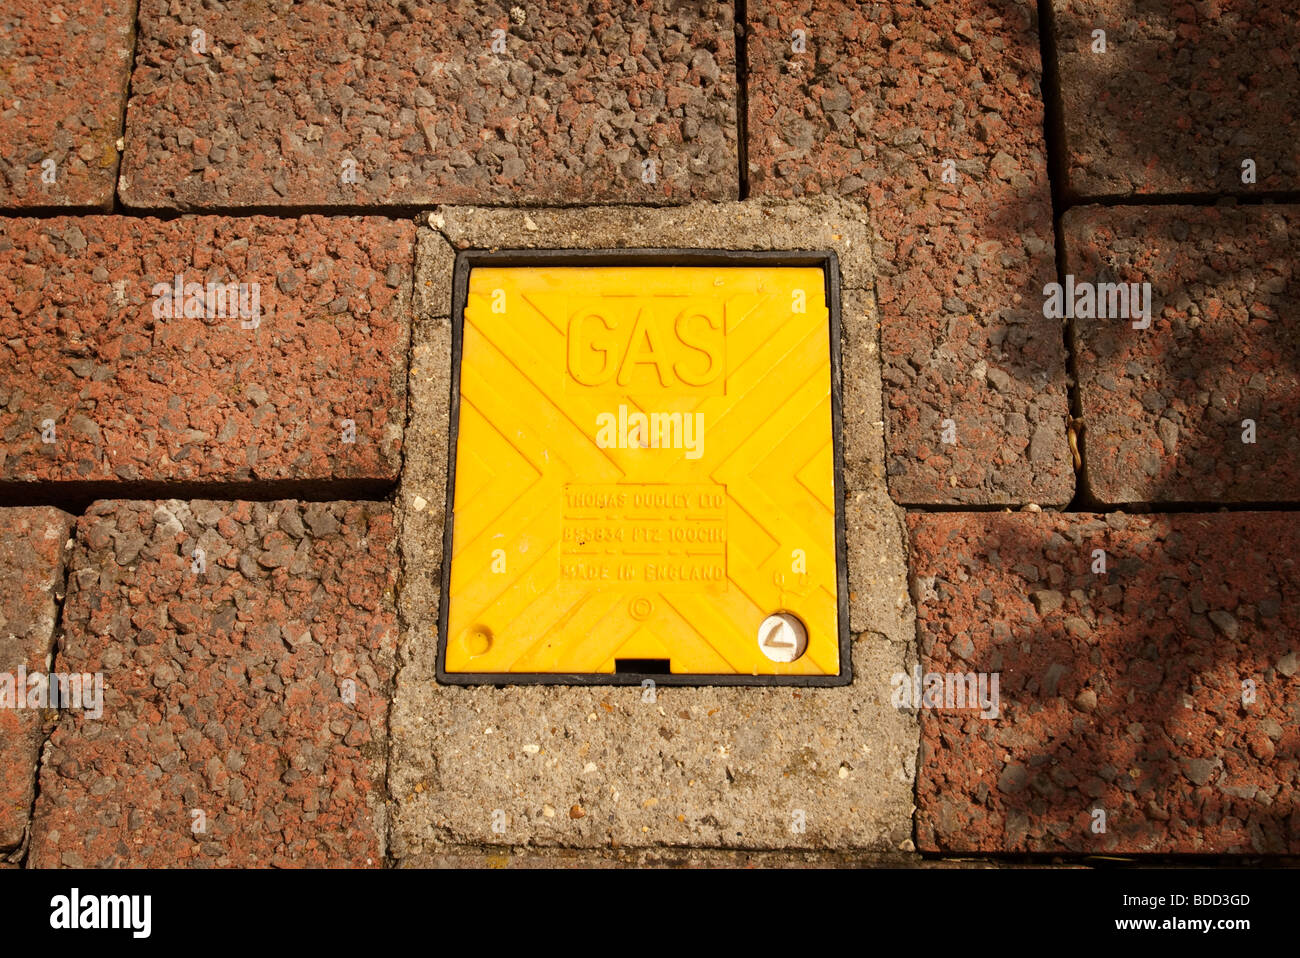 yellow gas mains cover - Stock Image